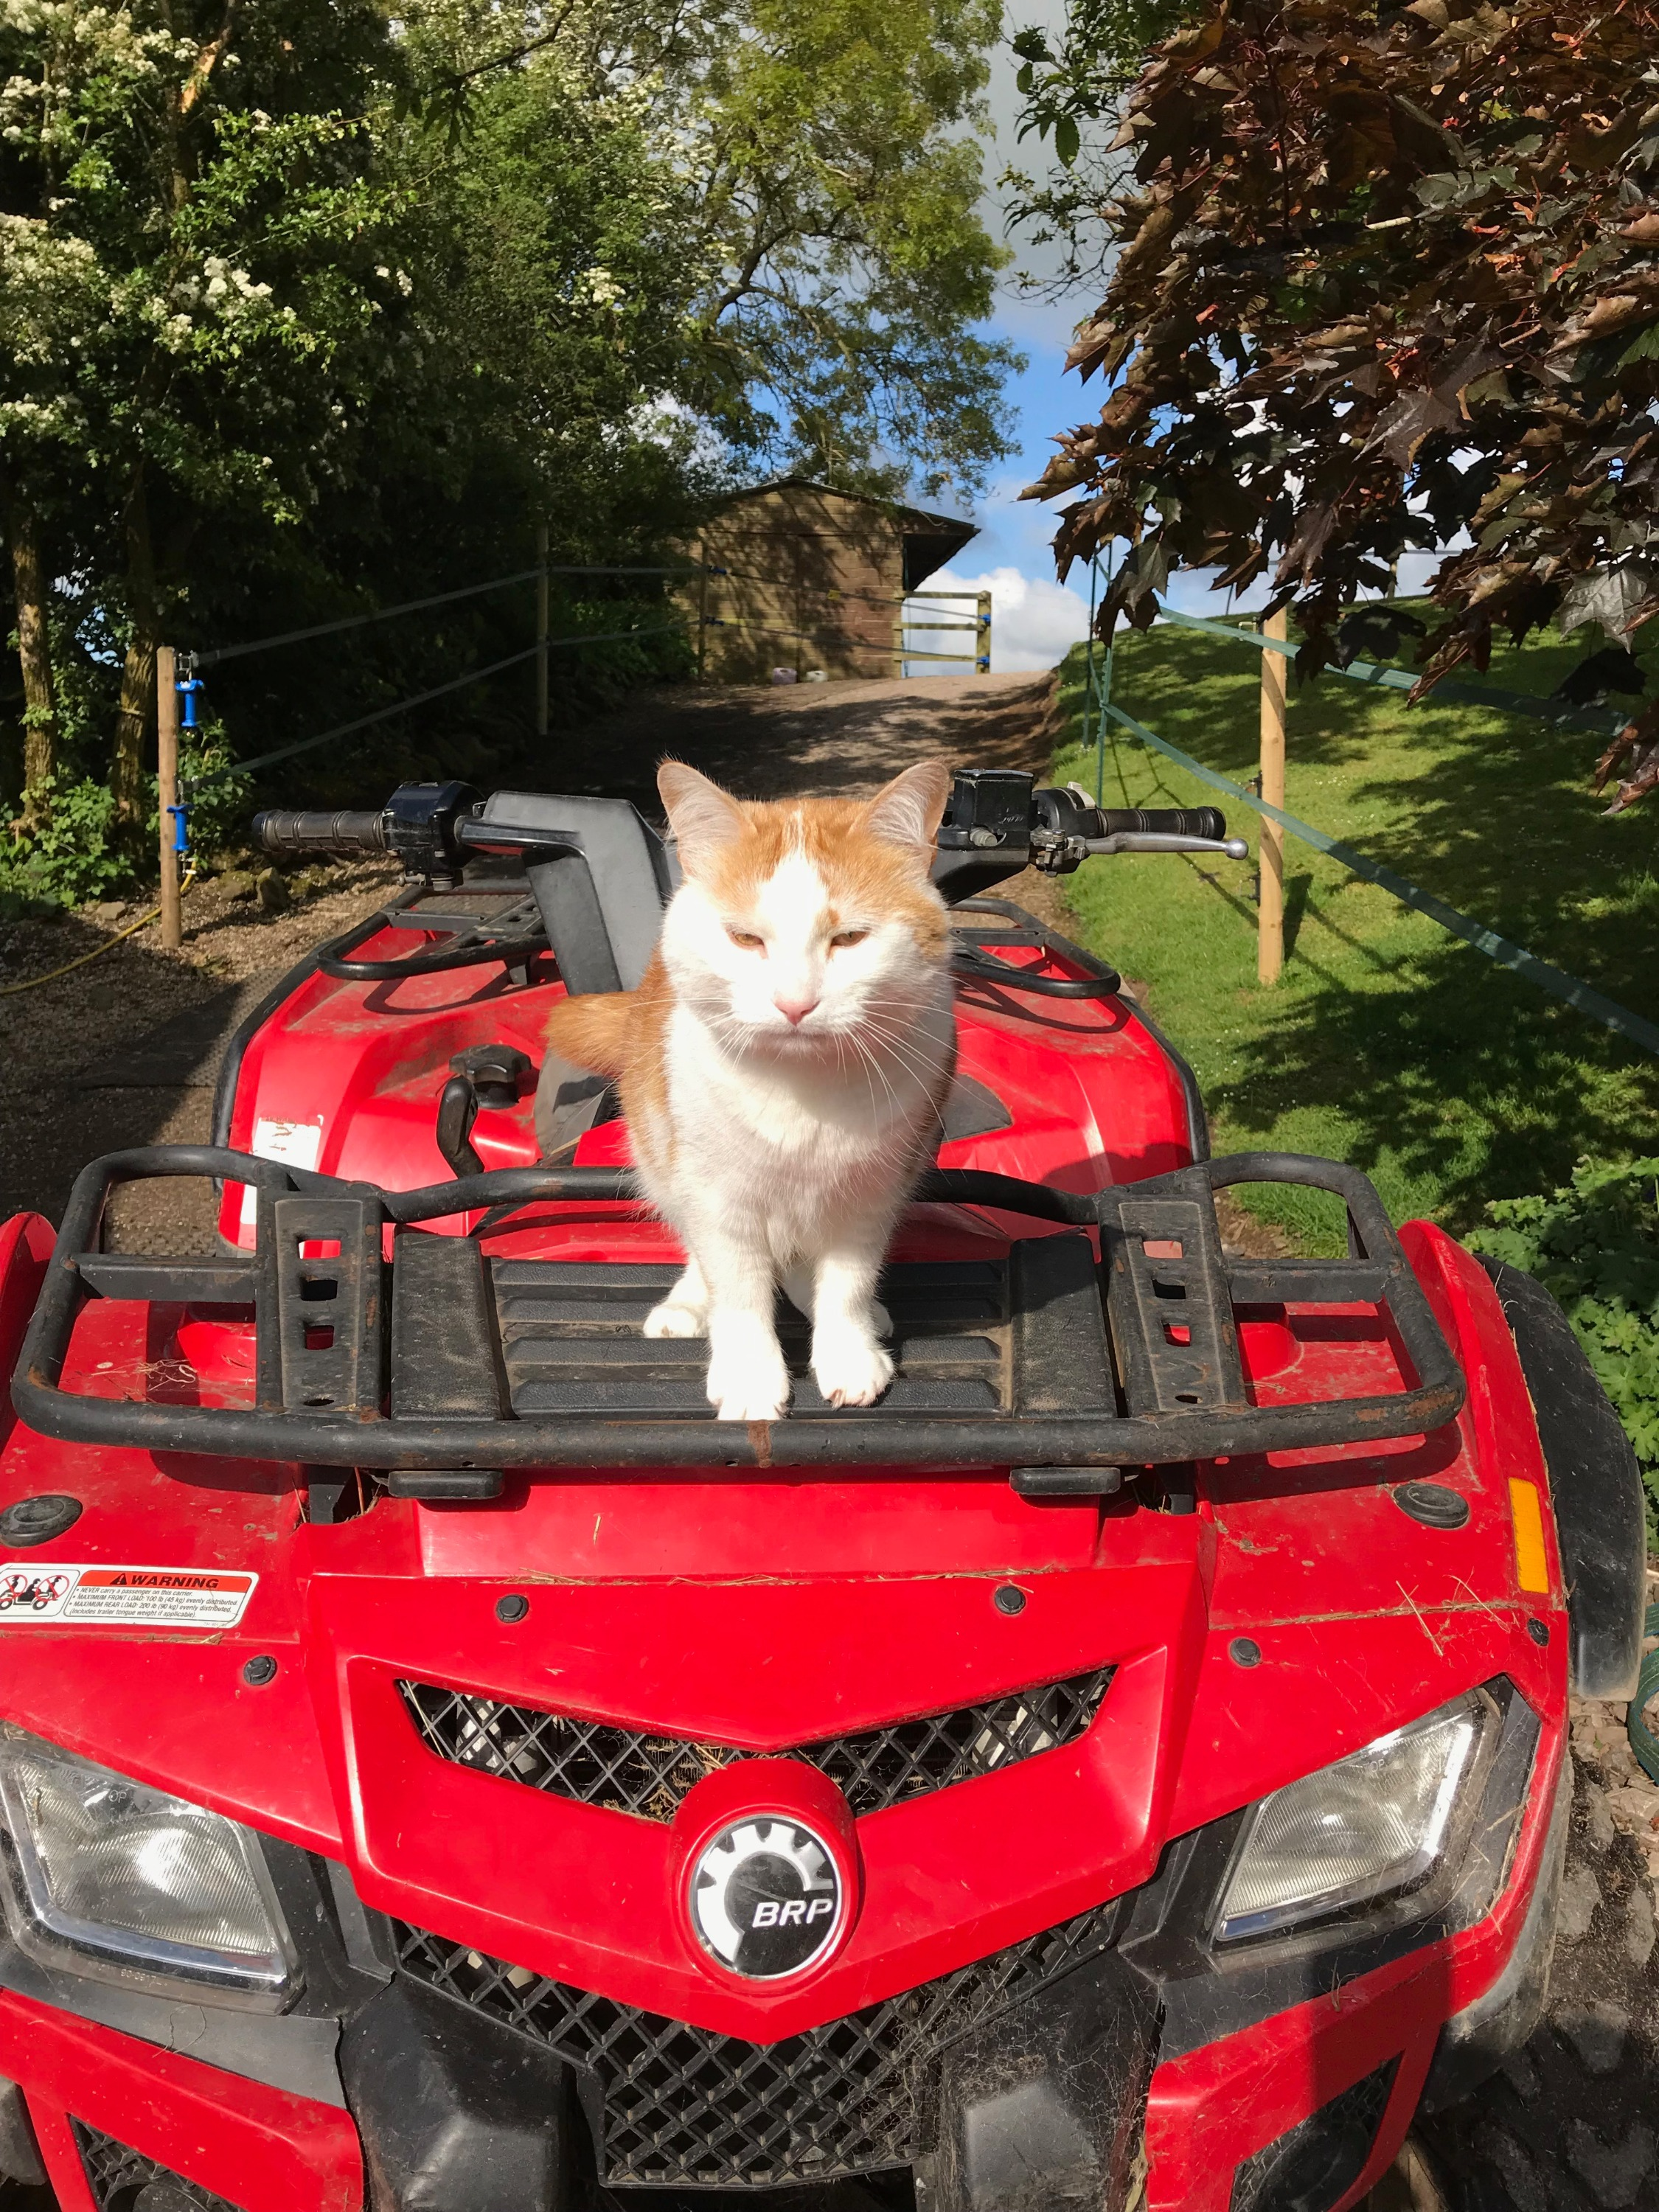 George the rescue cat on the quad